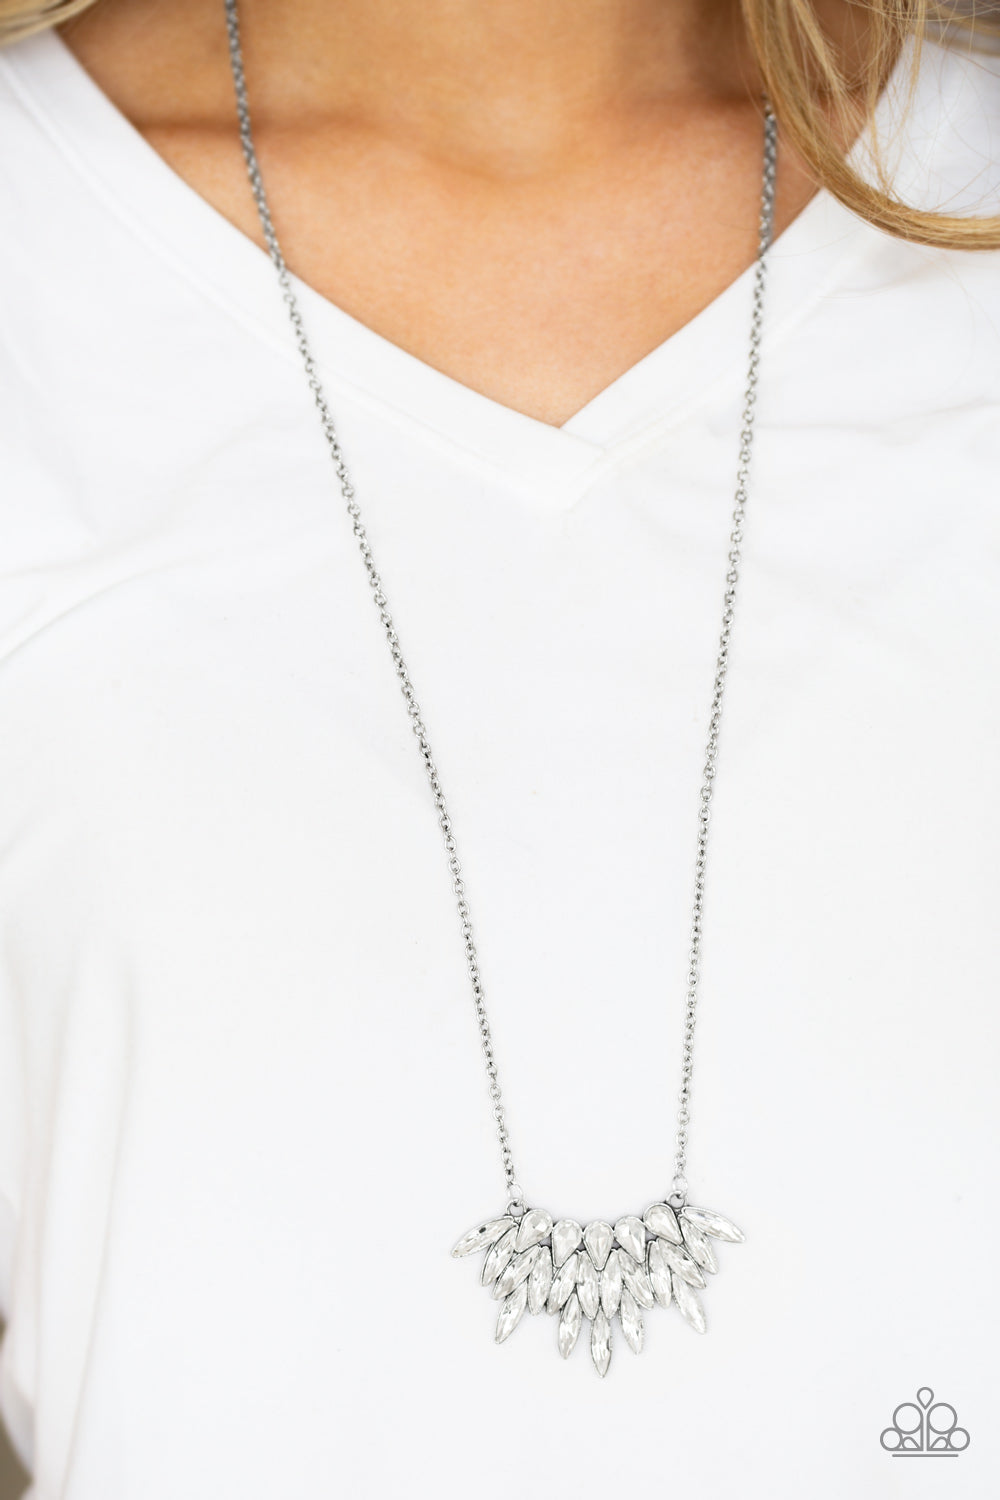 Featuring regal teardrop and marquise style cuts, glittery white rhinestones fan from the bottom of a lengthened silver chain for a dramatic look. Features an adjustable clasp closure.  Sold as one individual necklace. Includes one pair of matching earrings.  Always nickel and lead free.